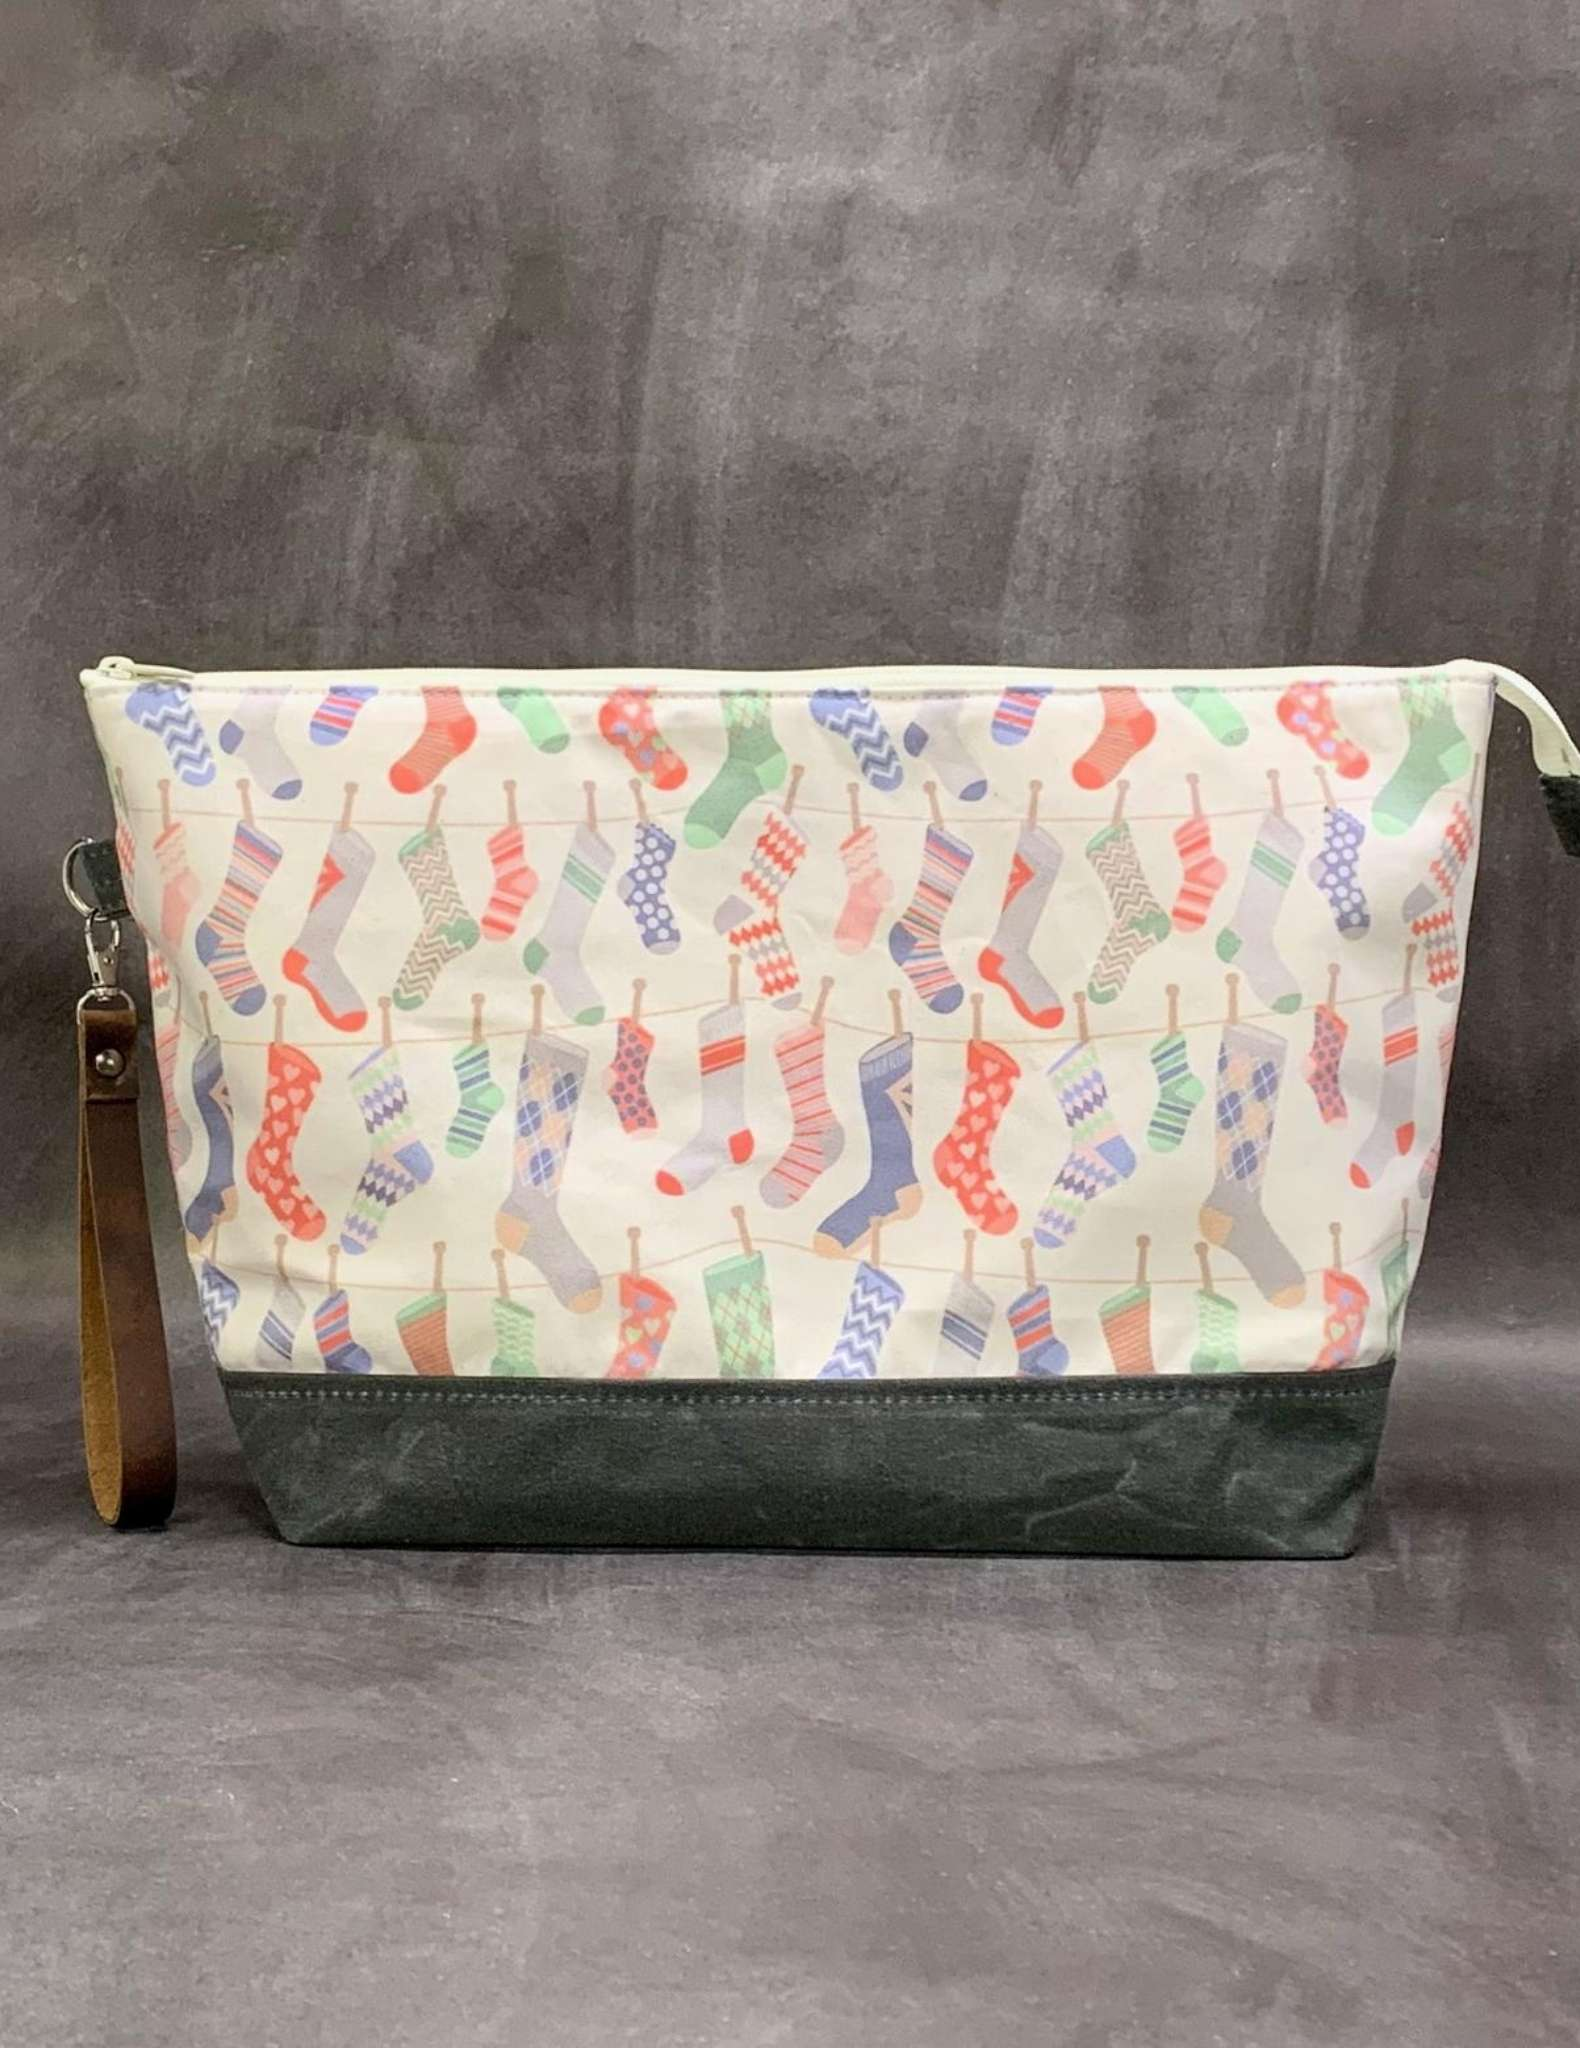 A project bag with zip made in a fabric print of hanging socks